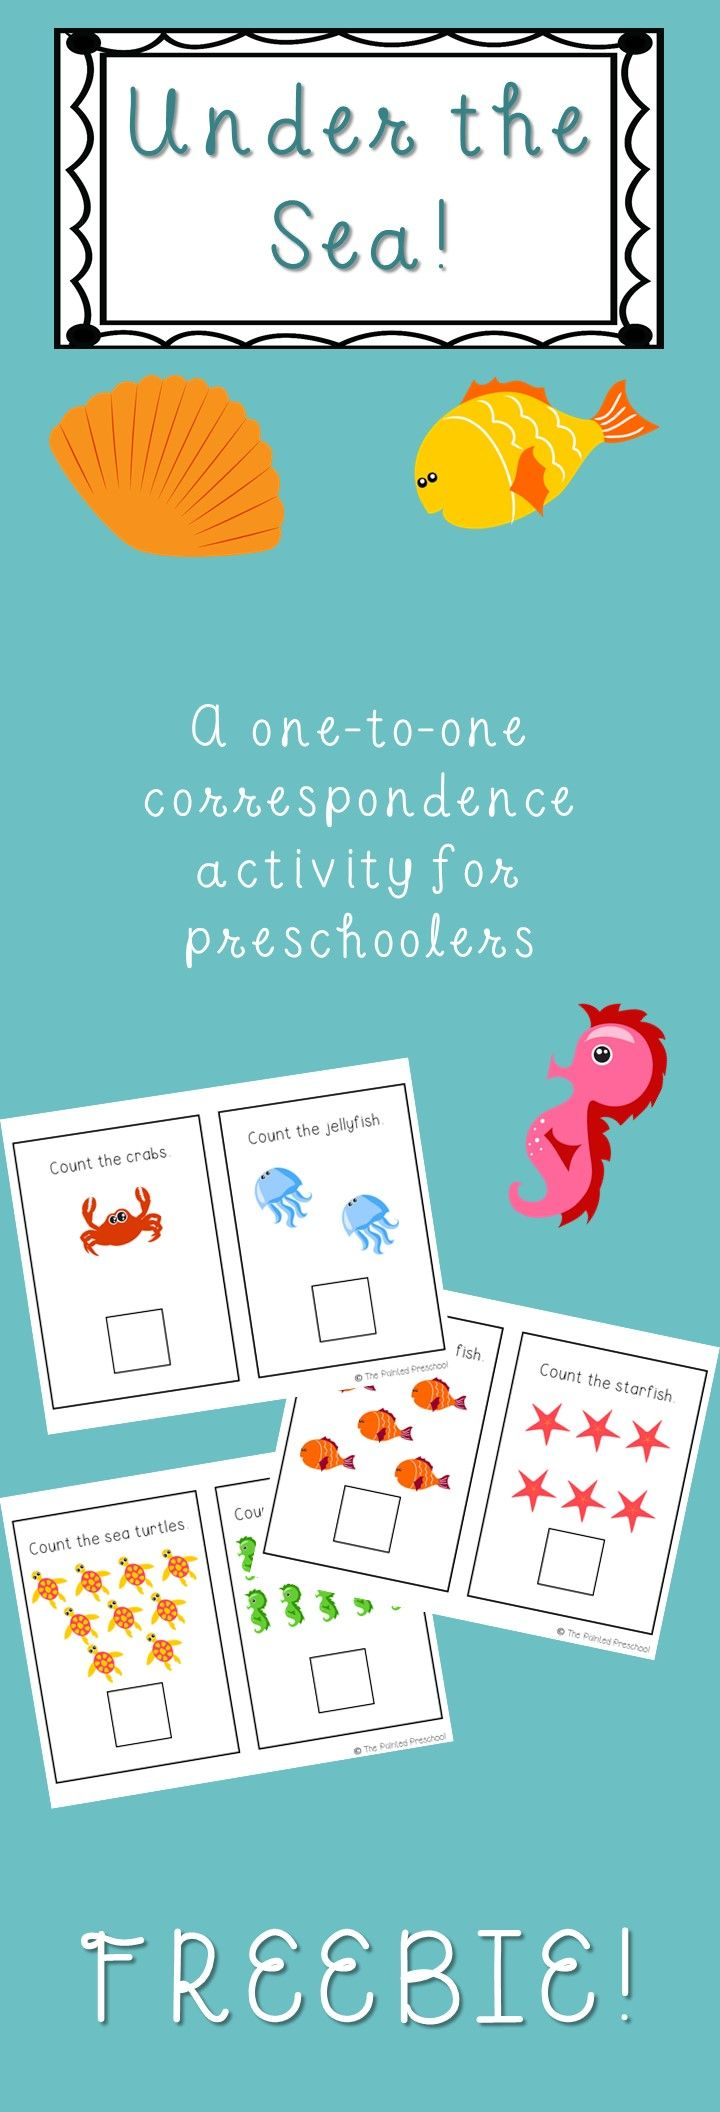 Under the Sea! An ocean-themed one-to-one correspondence activity for preschoolers and kindergartners!   FREE FREE FREE FREE